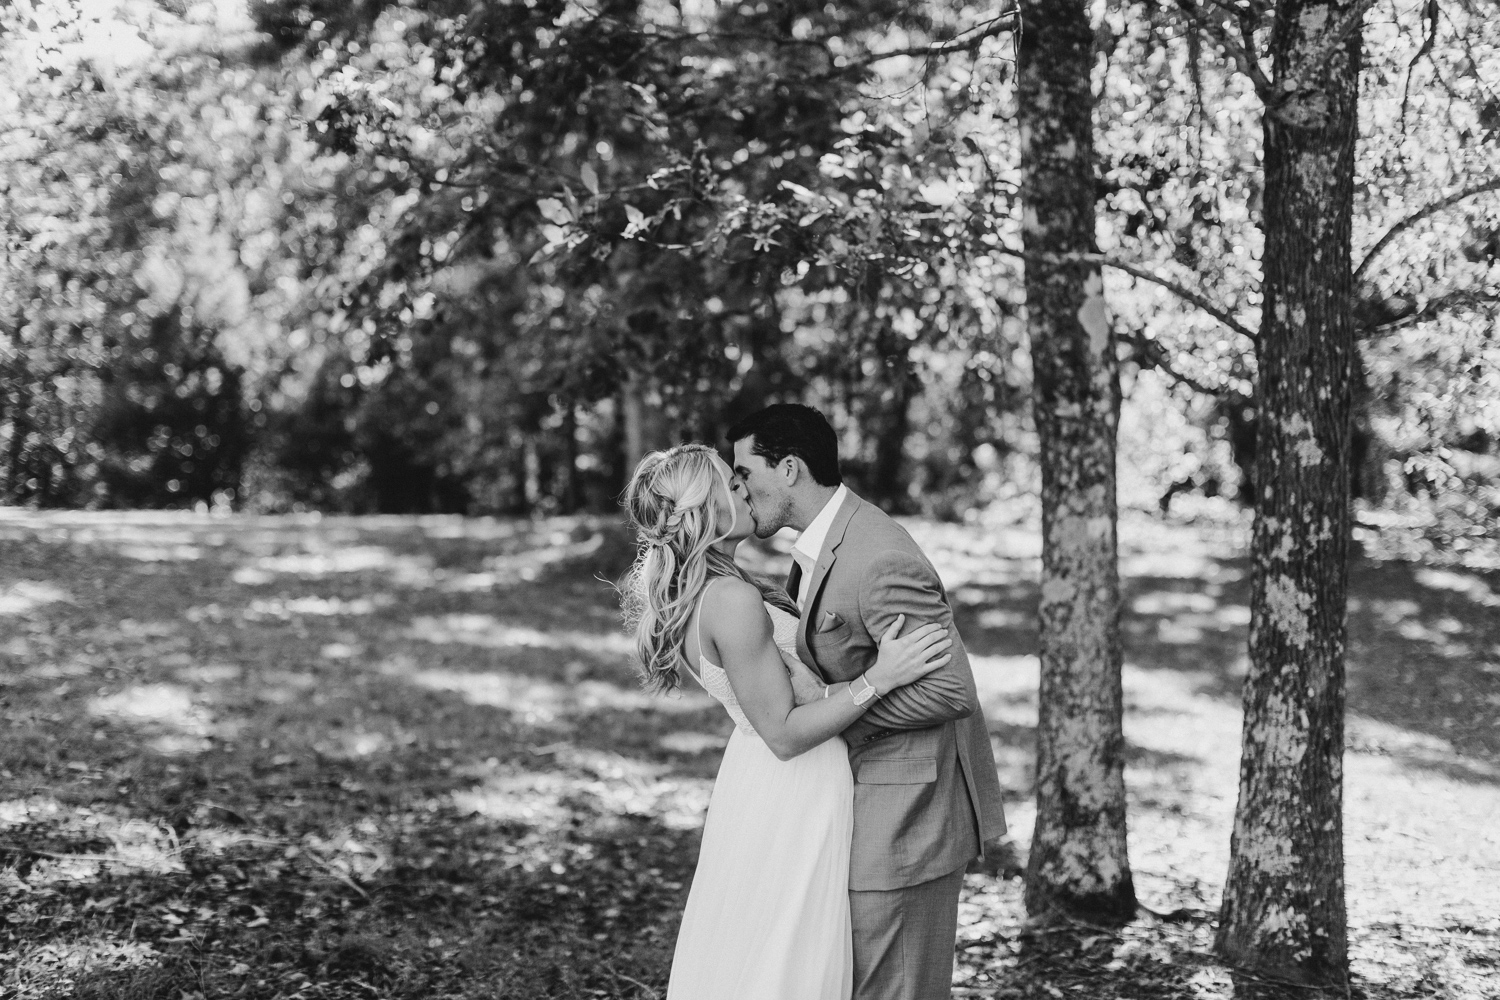 northcarolinaweddingphotographer-31